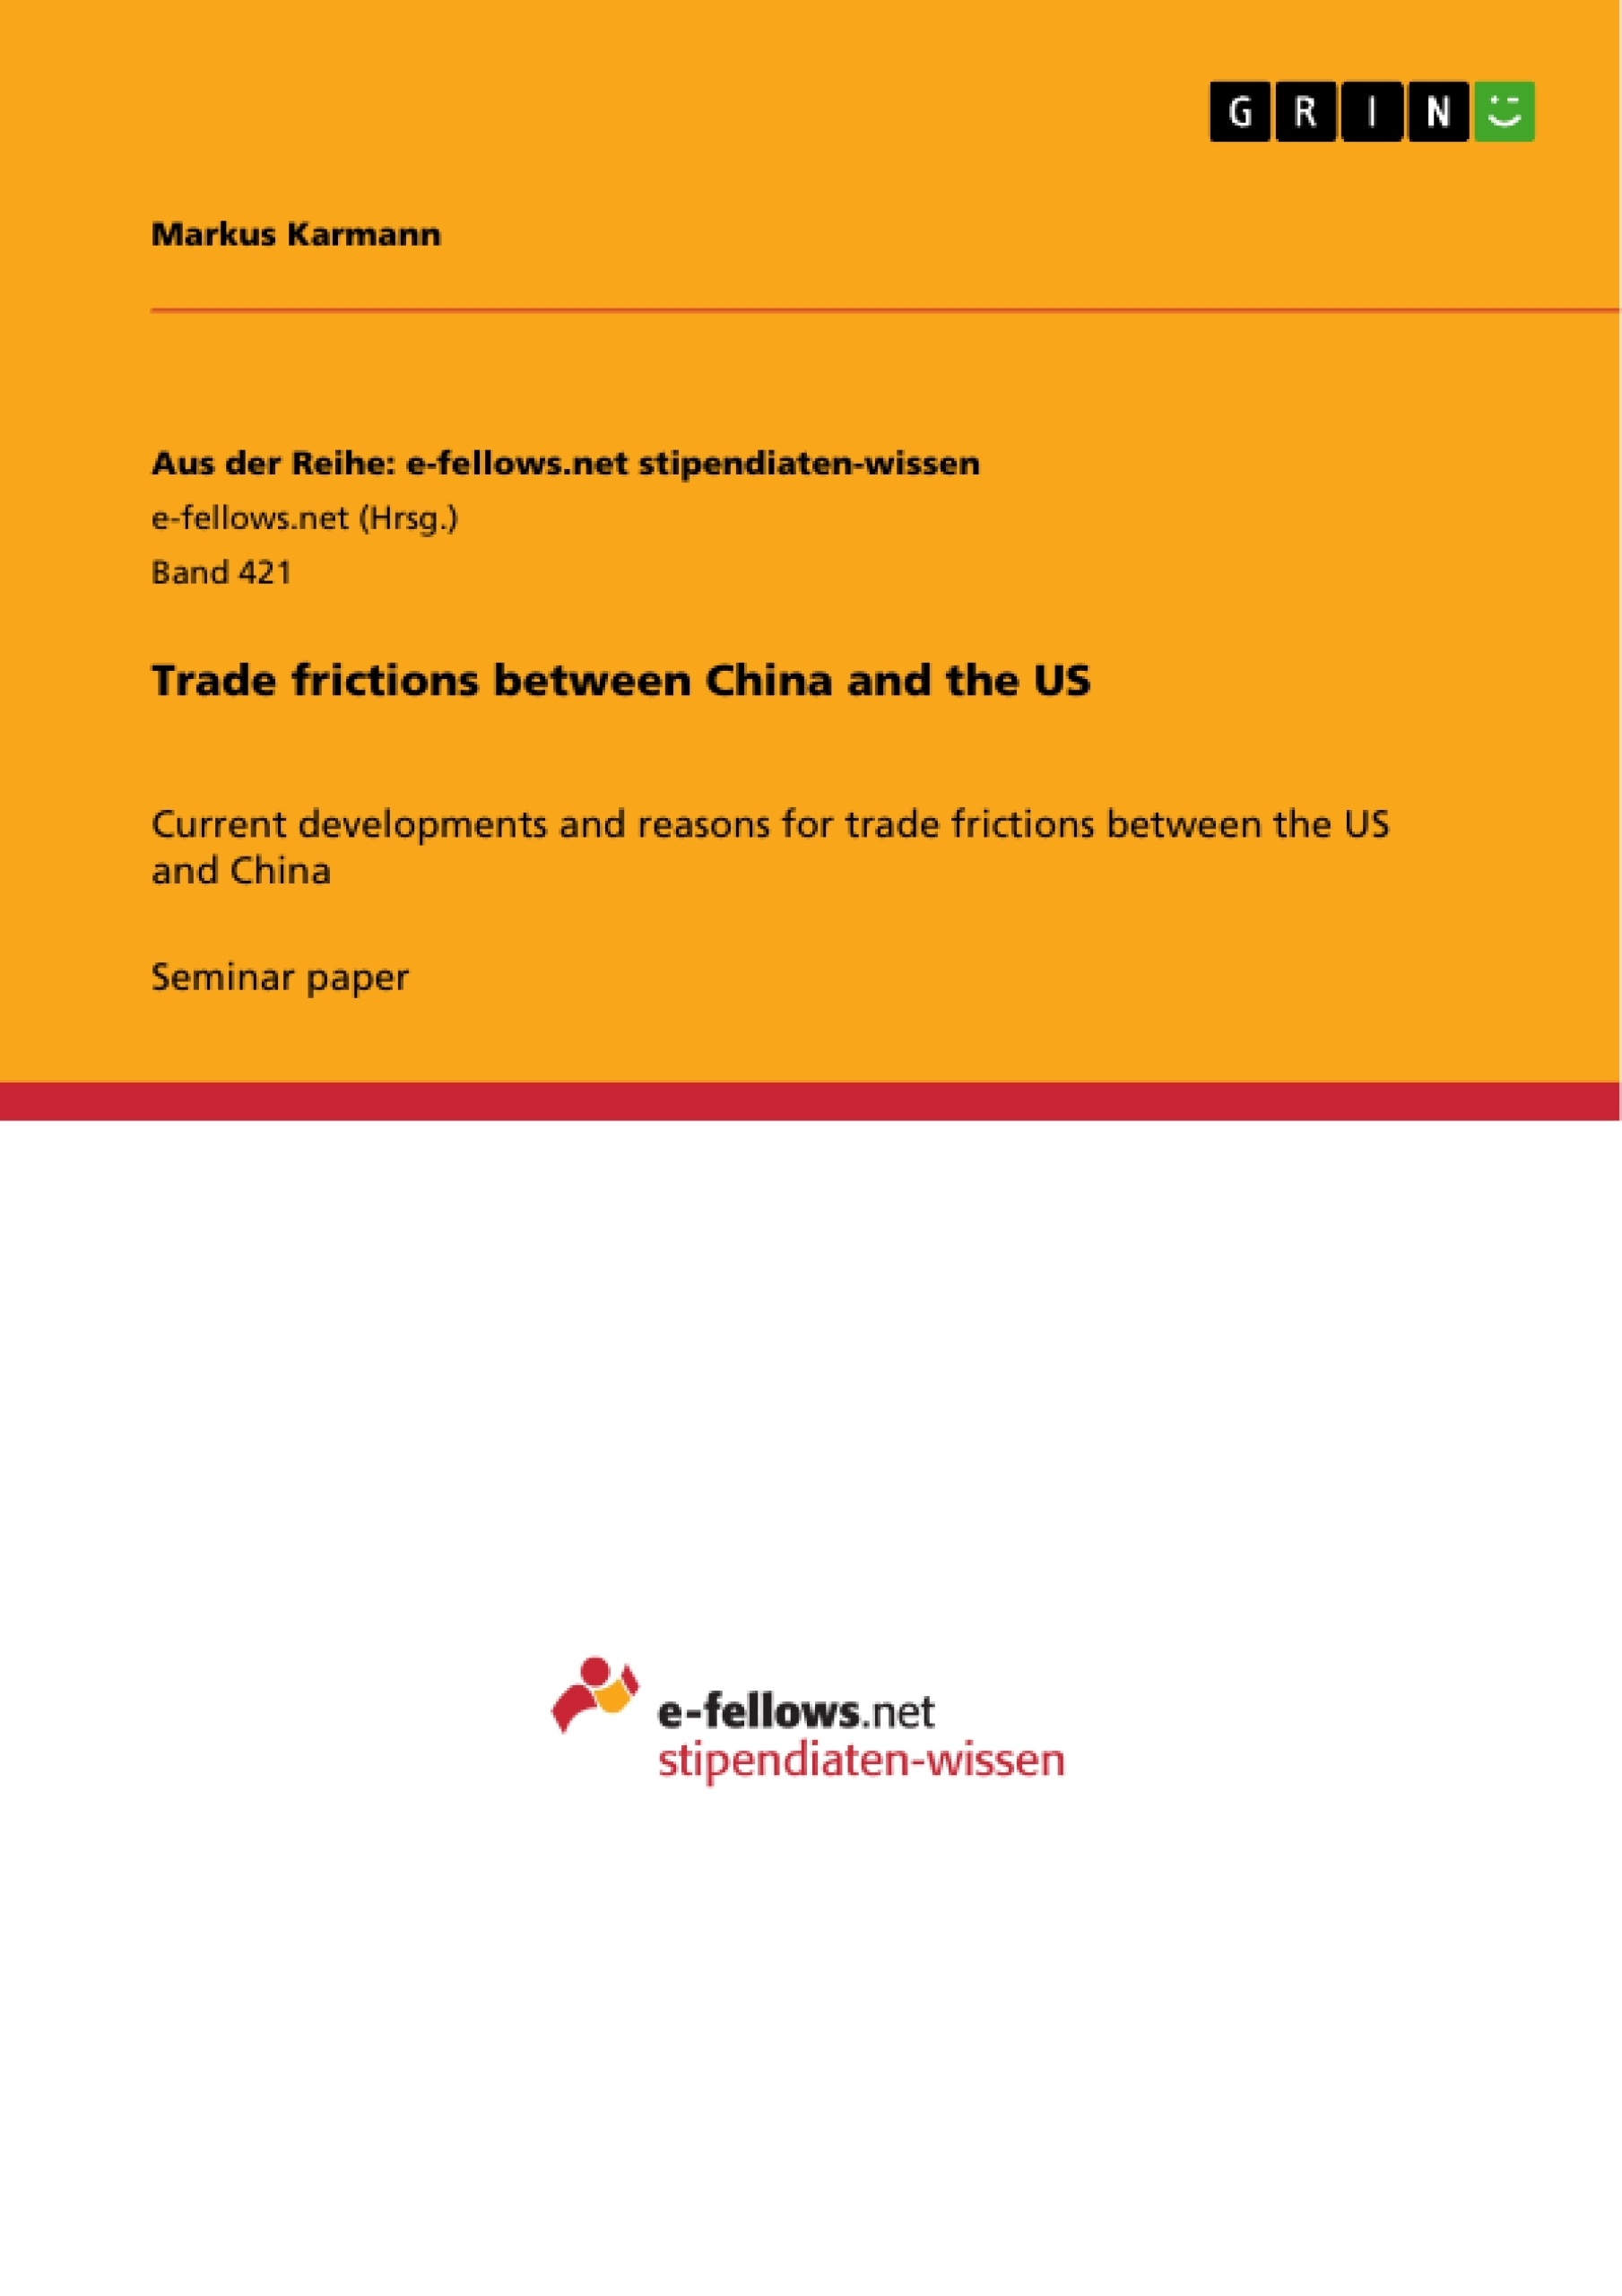 Title: Trade frictions between China and the US